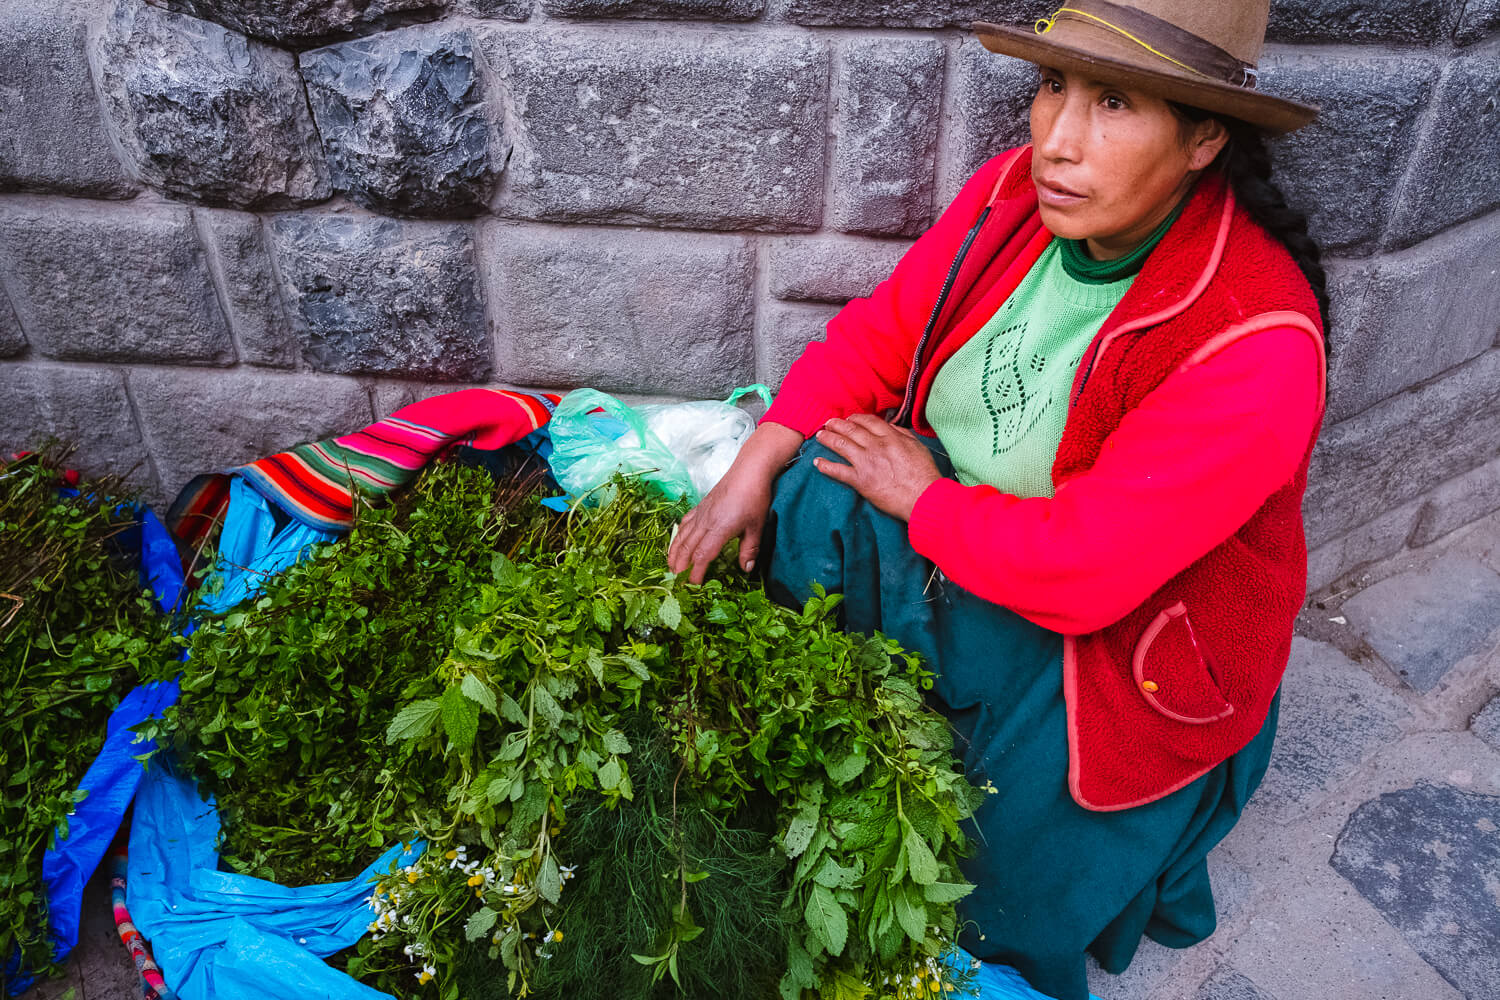 """Woman selling local herbs, Cusco. Travel photography and guide by © Natasha Lequepeys for """"And Then I Met Yoko"""". #cusco #peru #photoblog #travelblog #peruitinerary #cuscoitinerary"""